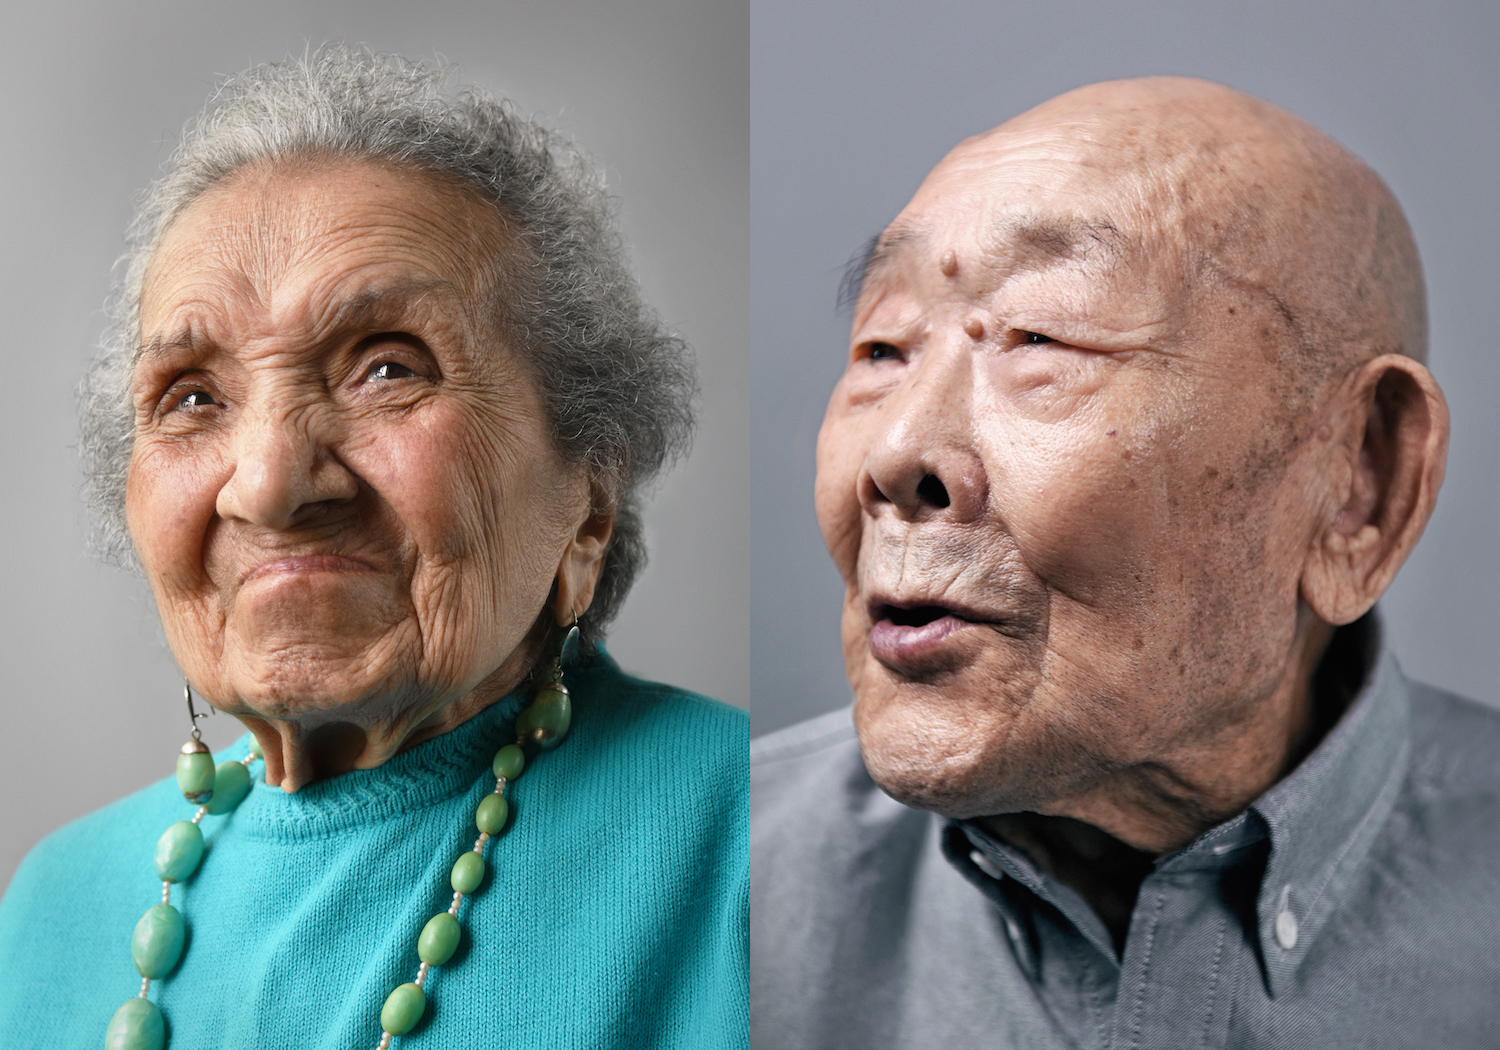 Ageing joyfully: portraits of people aged 100 and older